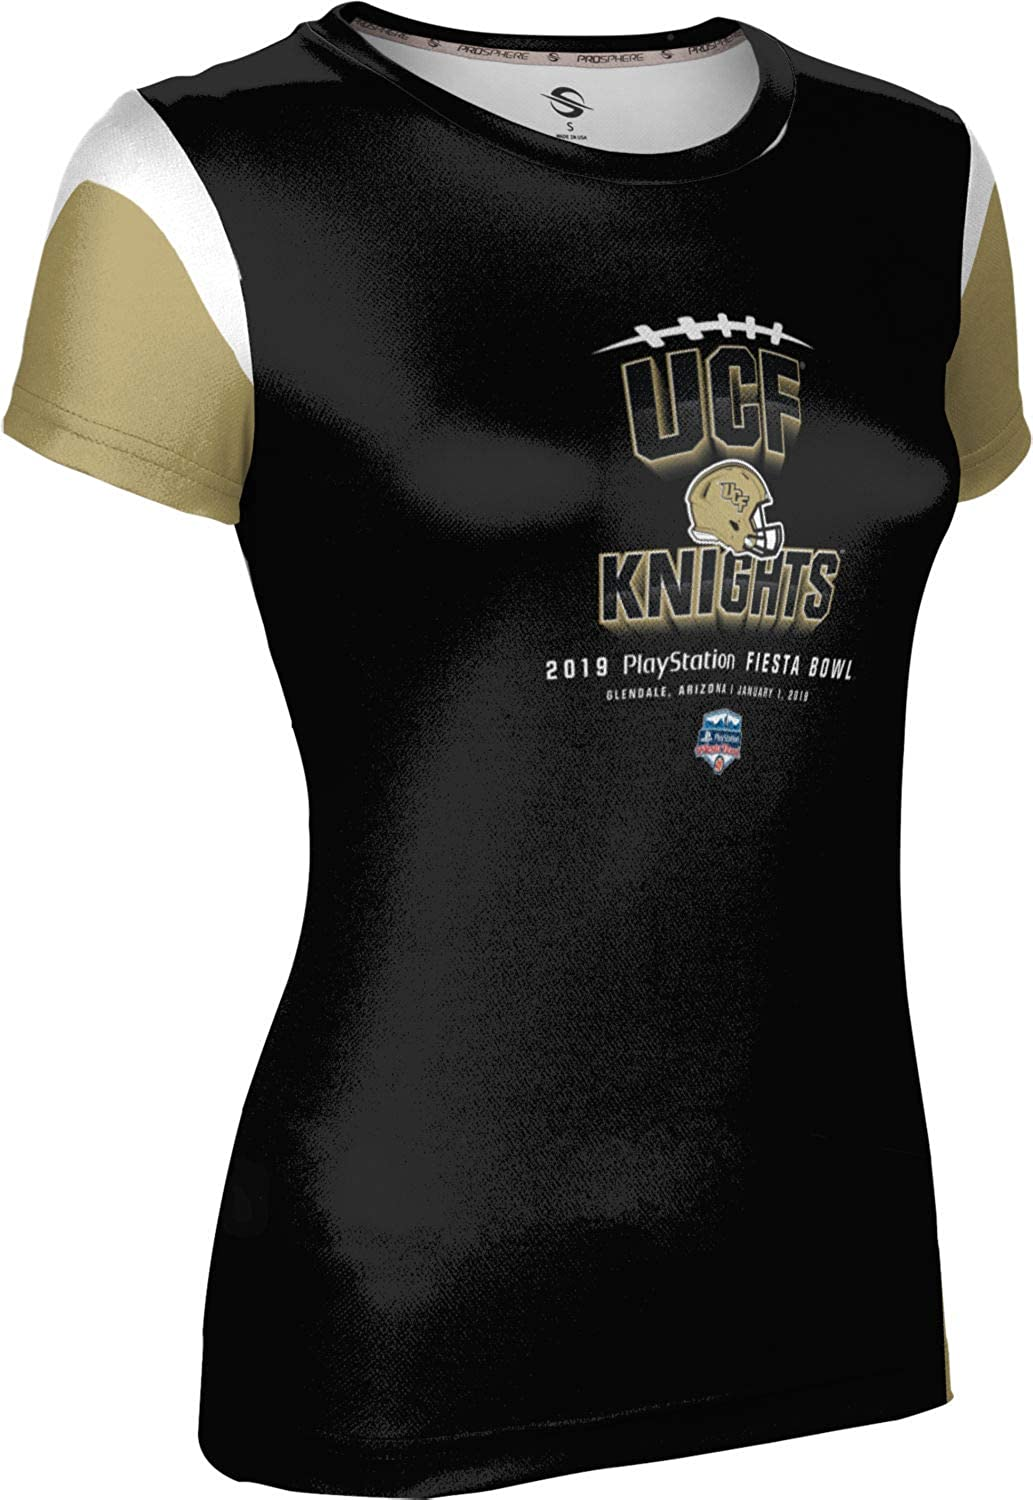 Fiesta Bowl 2019 Tailgate University of Central Florida Girls Performance T-Shirt